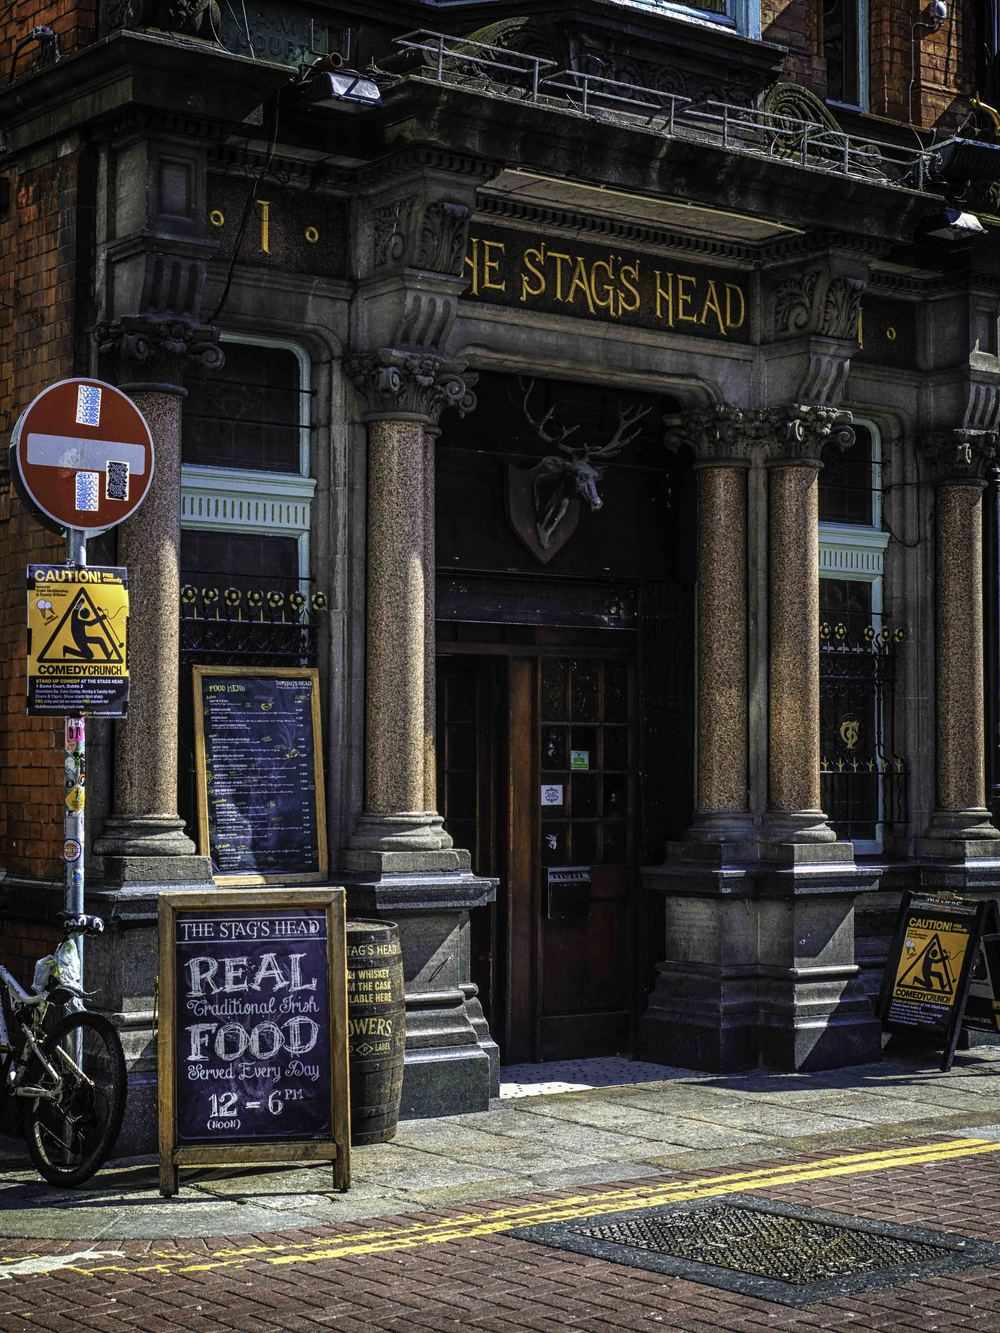 the stag's head, just another pub on another street - they are literally everywhere!